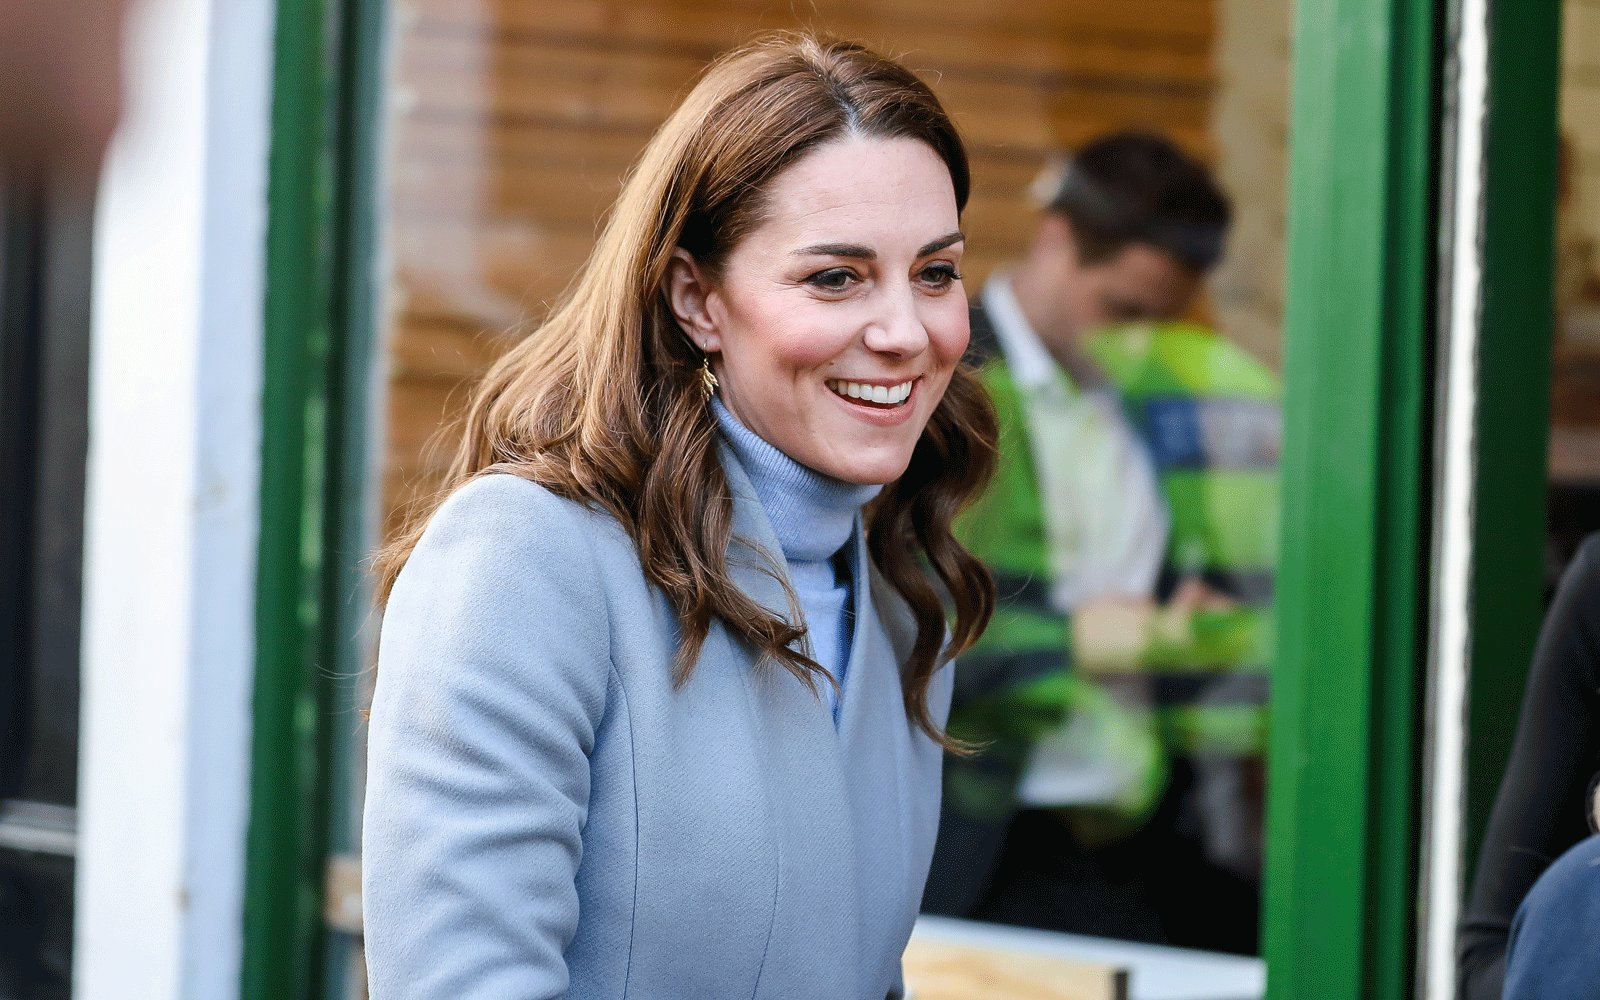 Kate Middleton Visits Northern Ireland and Scotland to Share Her New Early Education-focused Mission